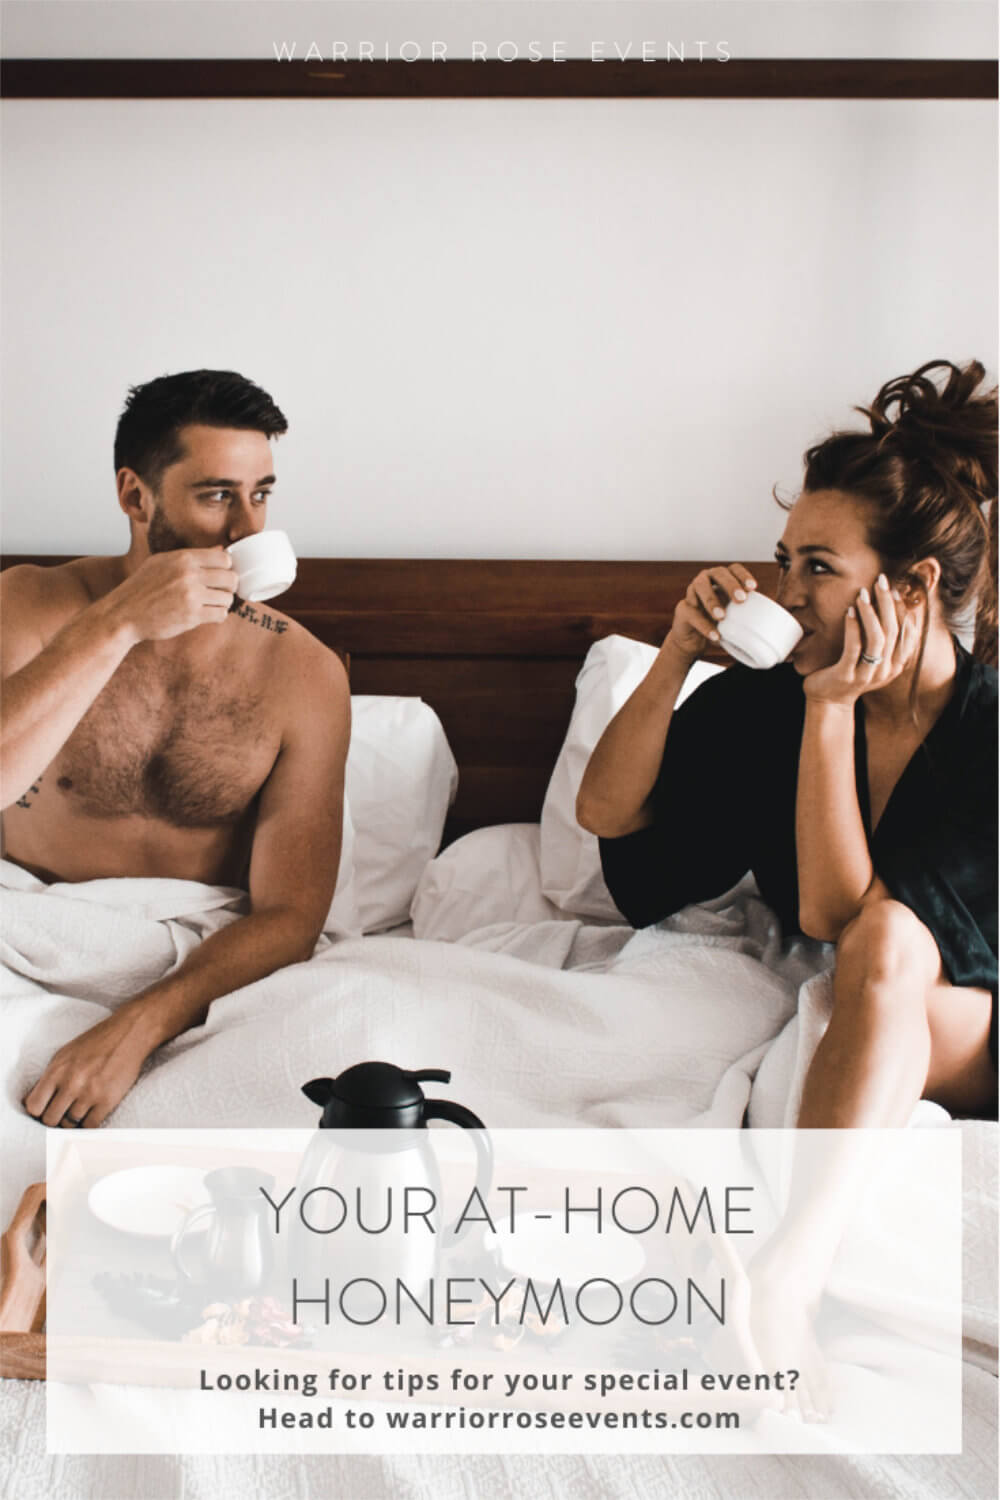 Your At-Home Honeymoon Covid Staycation Ideas for Couples Warrior Rose Events 3